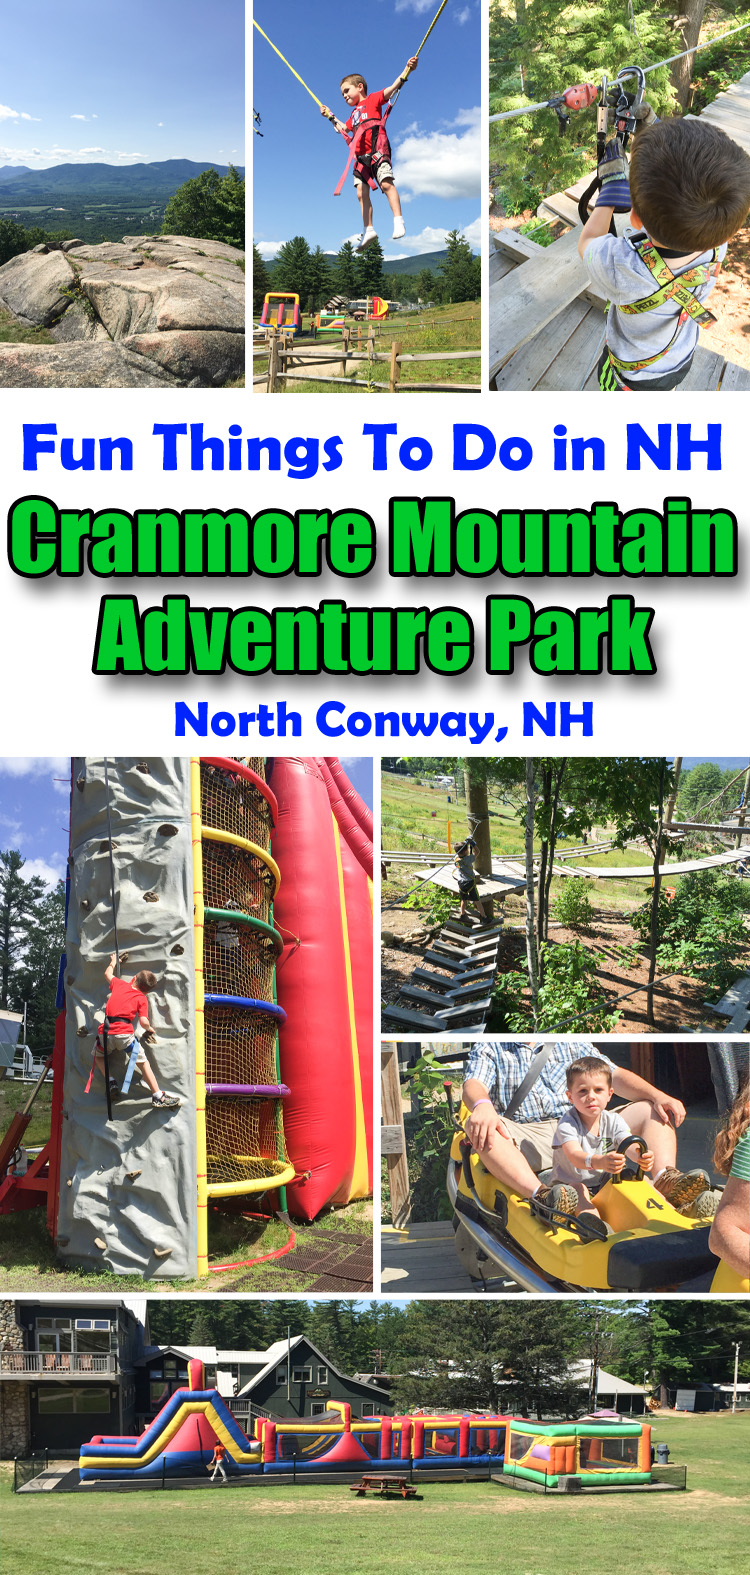 cranmore mountain adventure center